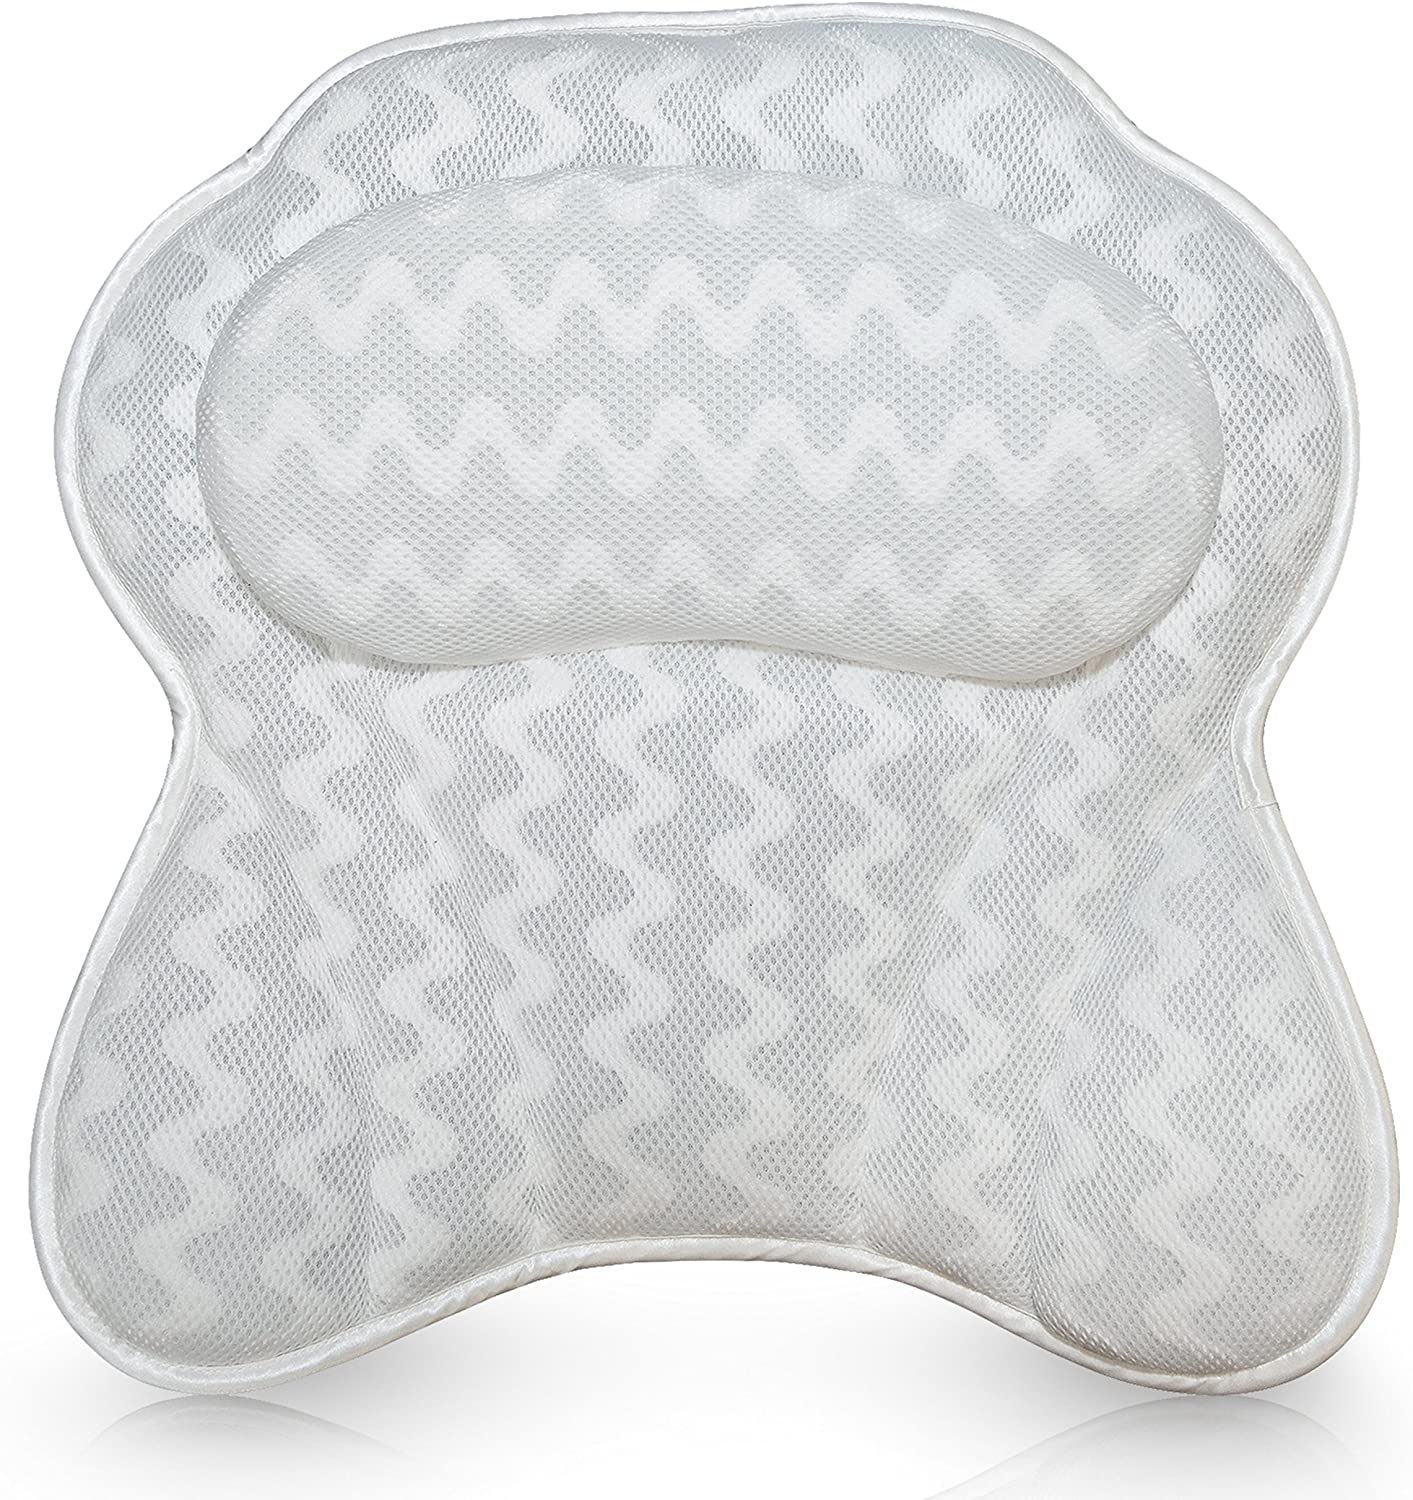 Luxurious Bath Pillow for Women & Men